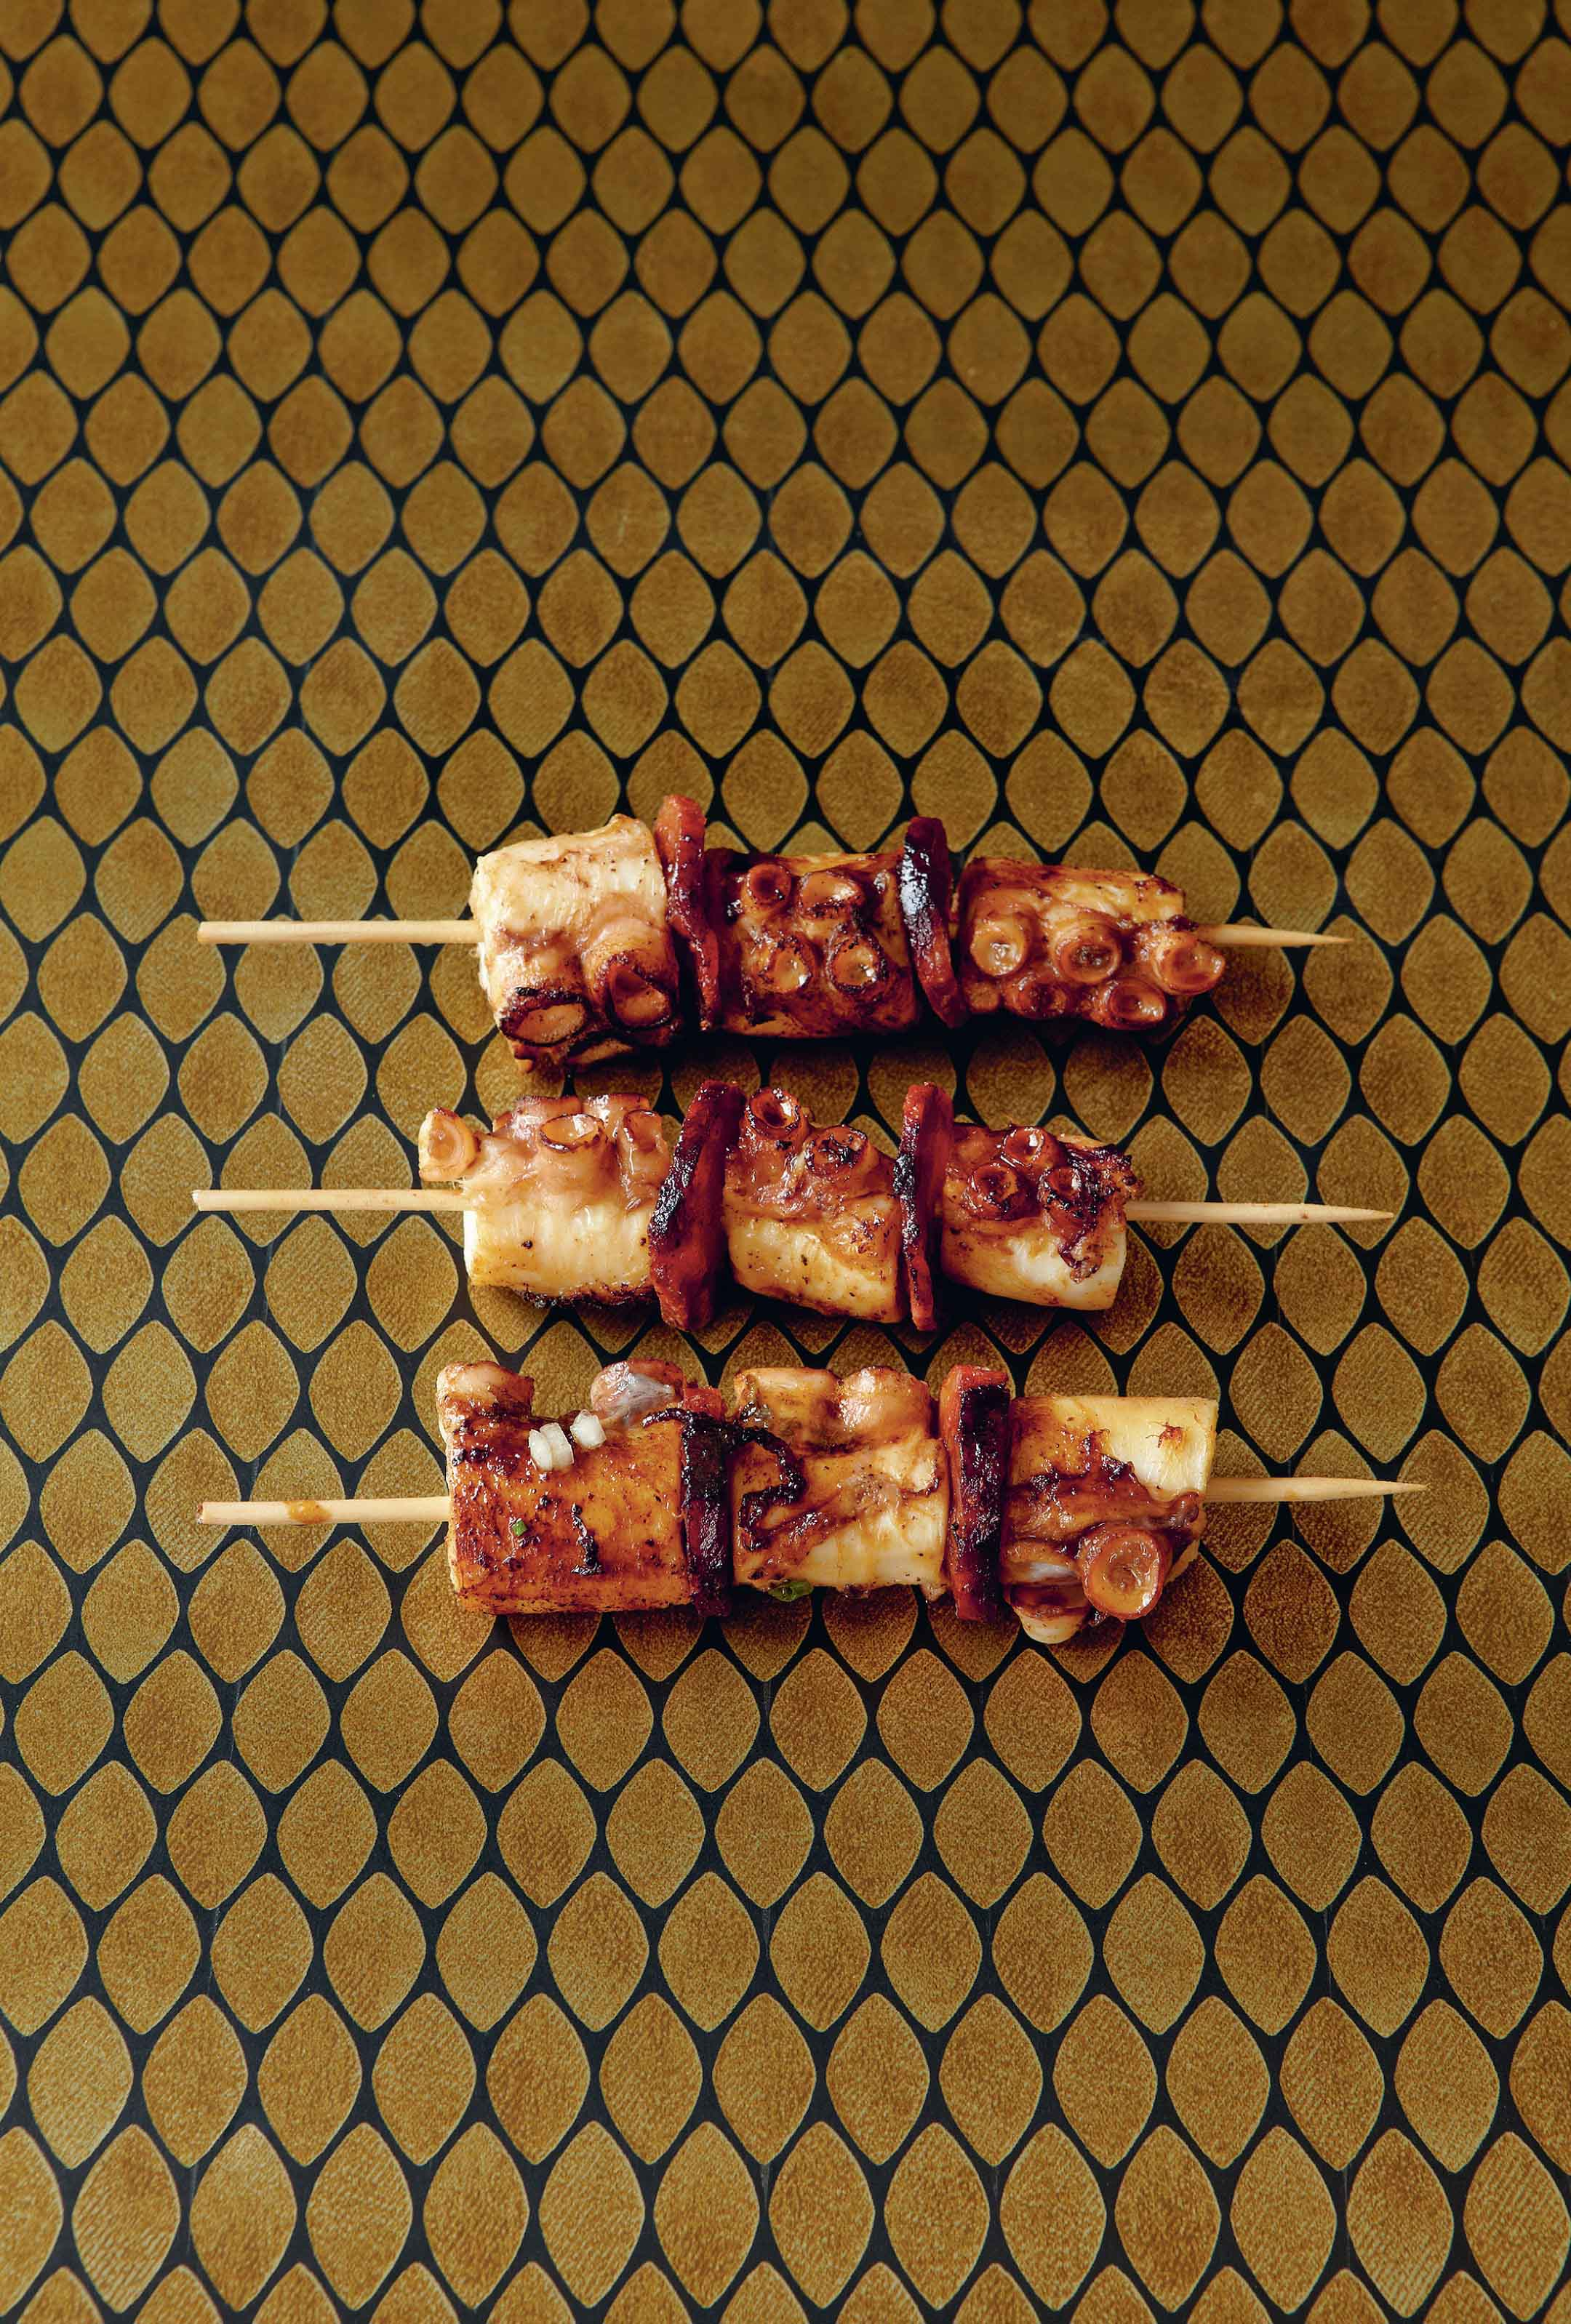 Octopus and chorizo kebabs